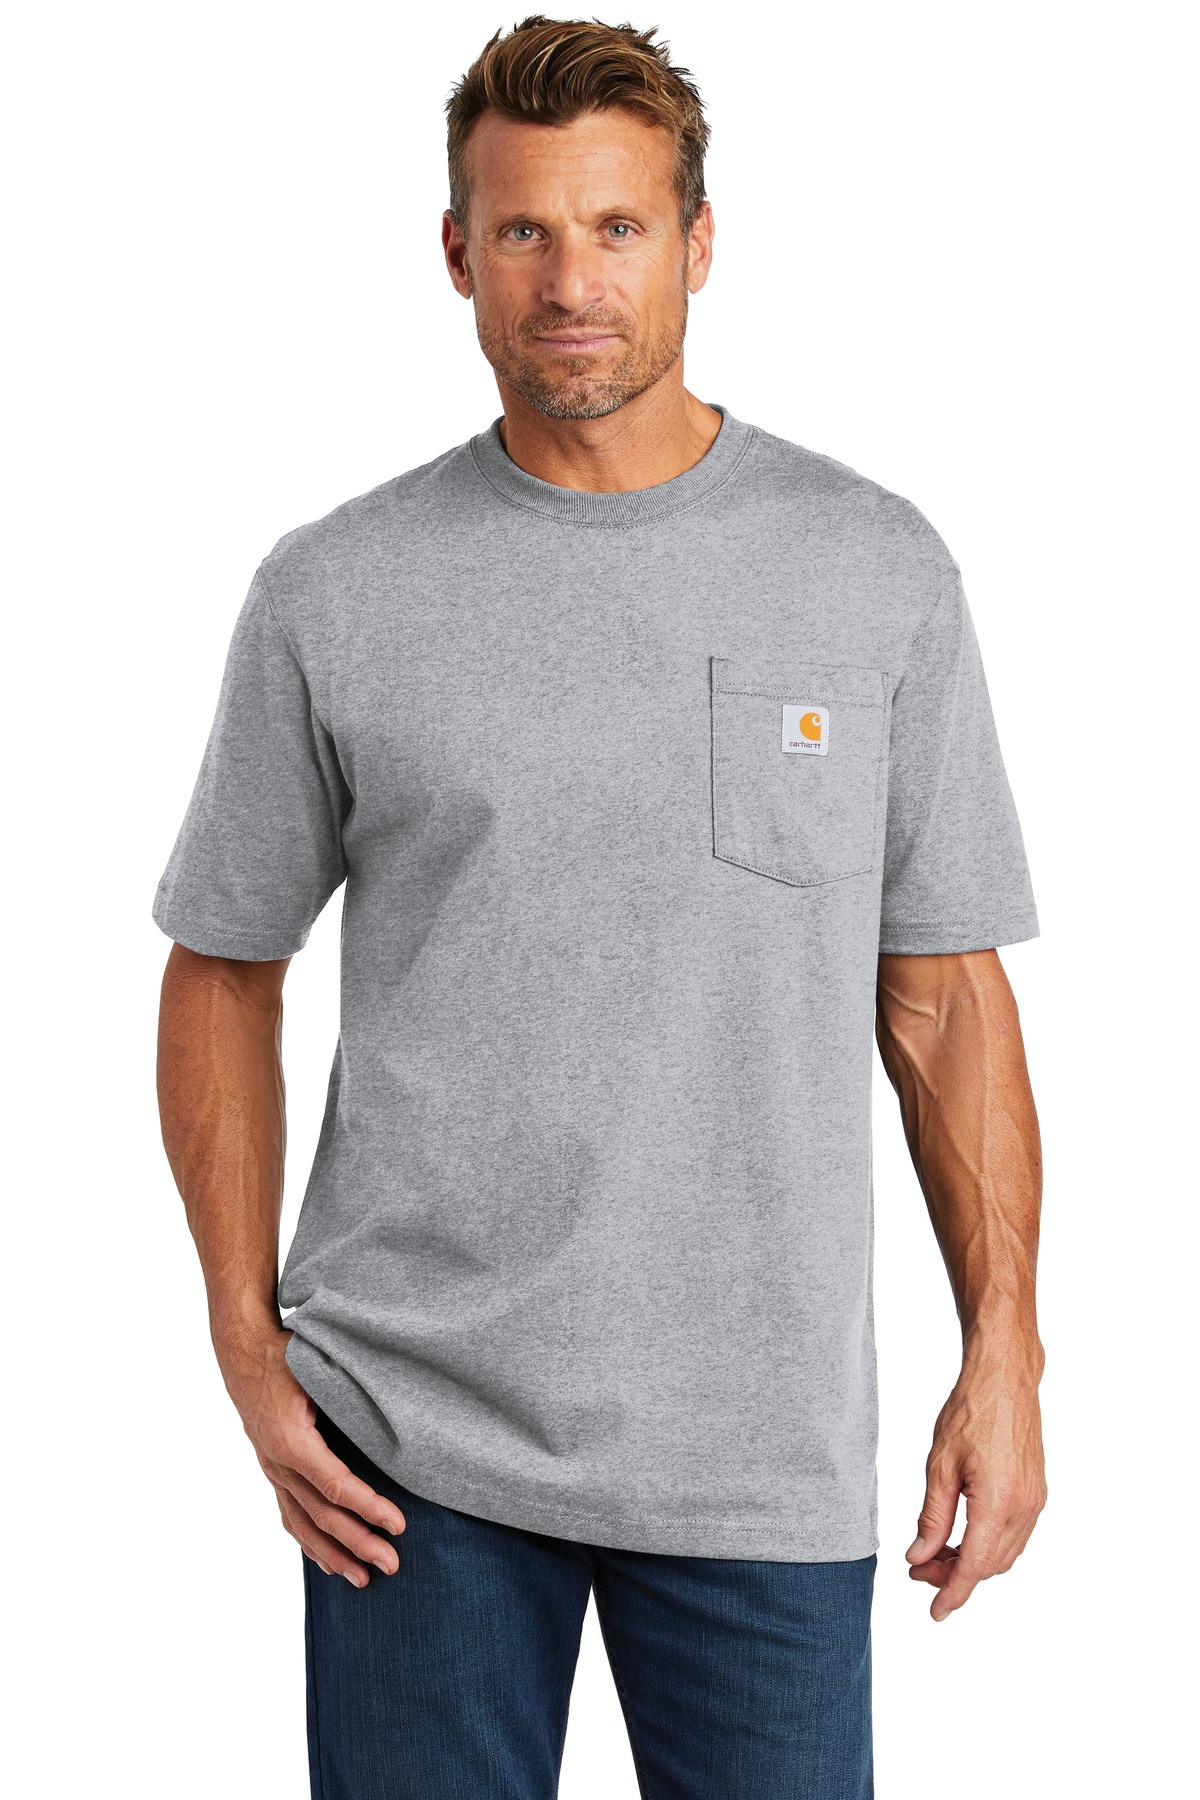 Carhartt  ®  Workwear Pocket Short Sleeve T-Shirt. CTK87 - Heather Grey